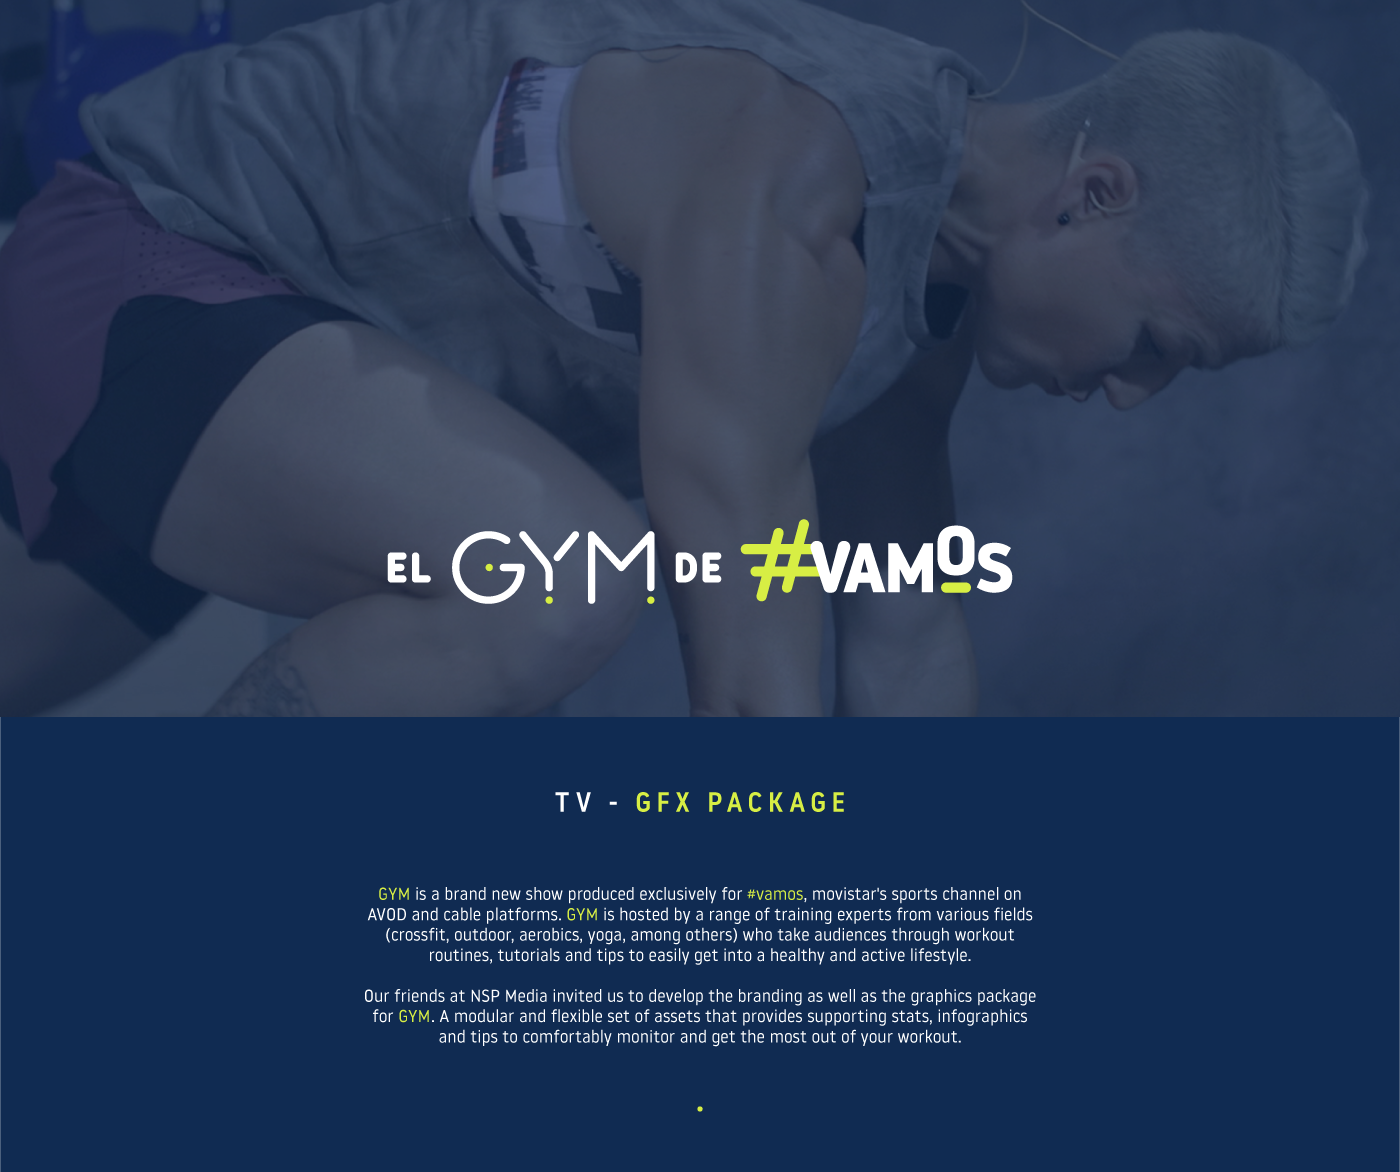 GYM - Branding & Graphics Package on Behance